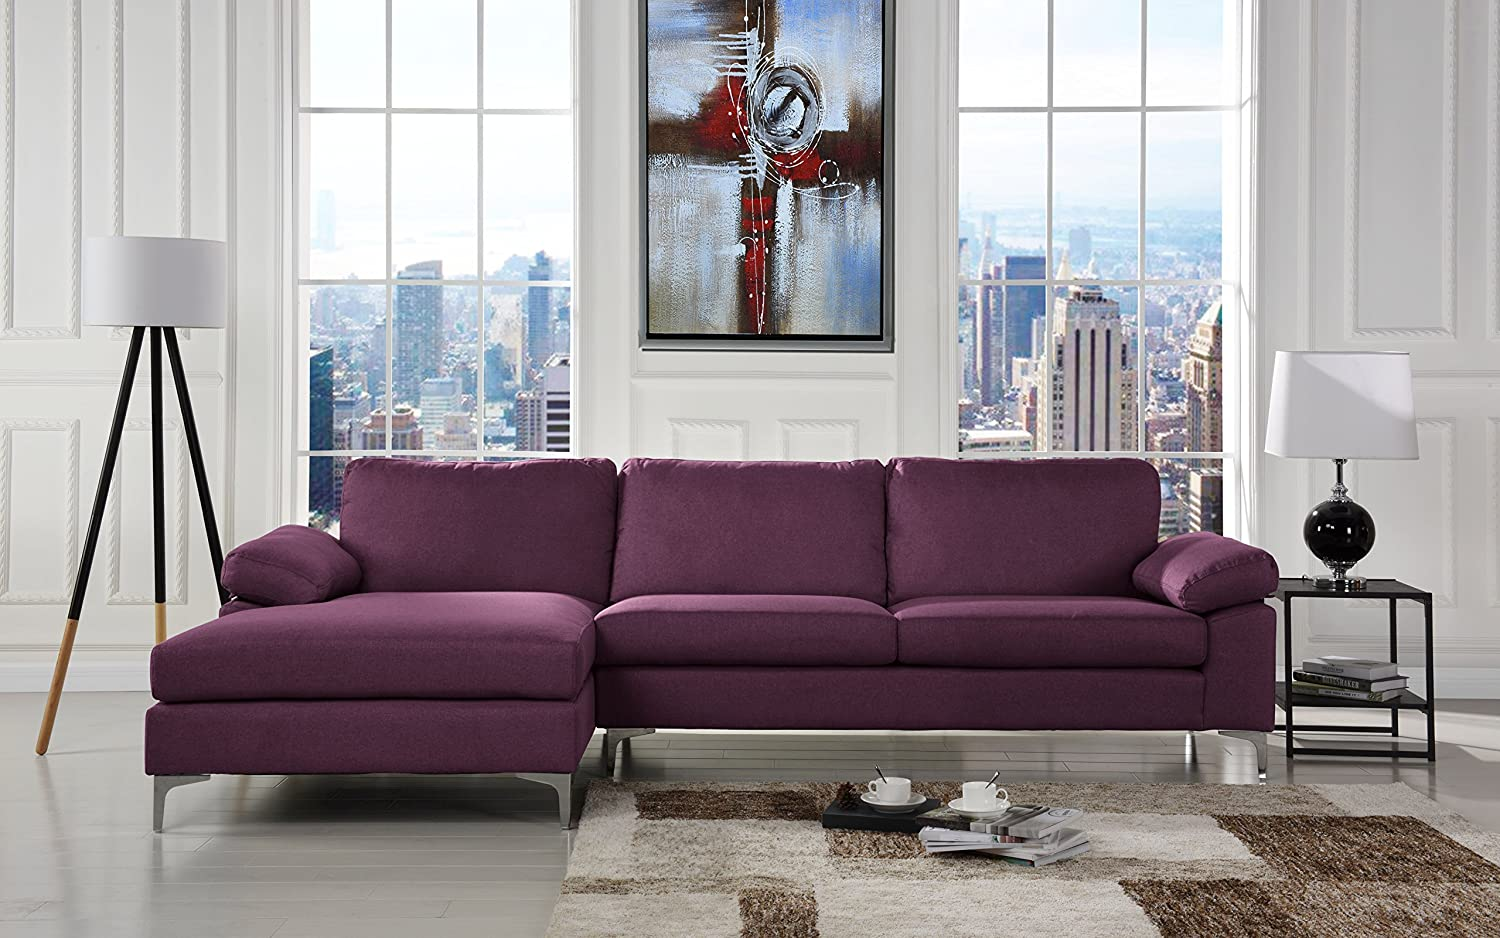 Modern Large Linen Fabric Sectional Sofa, L-Shape Couch with Extra Wide Chaise Lounge (Purple) Sofamania EXP173-FB